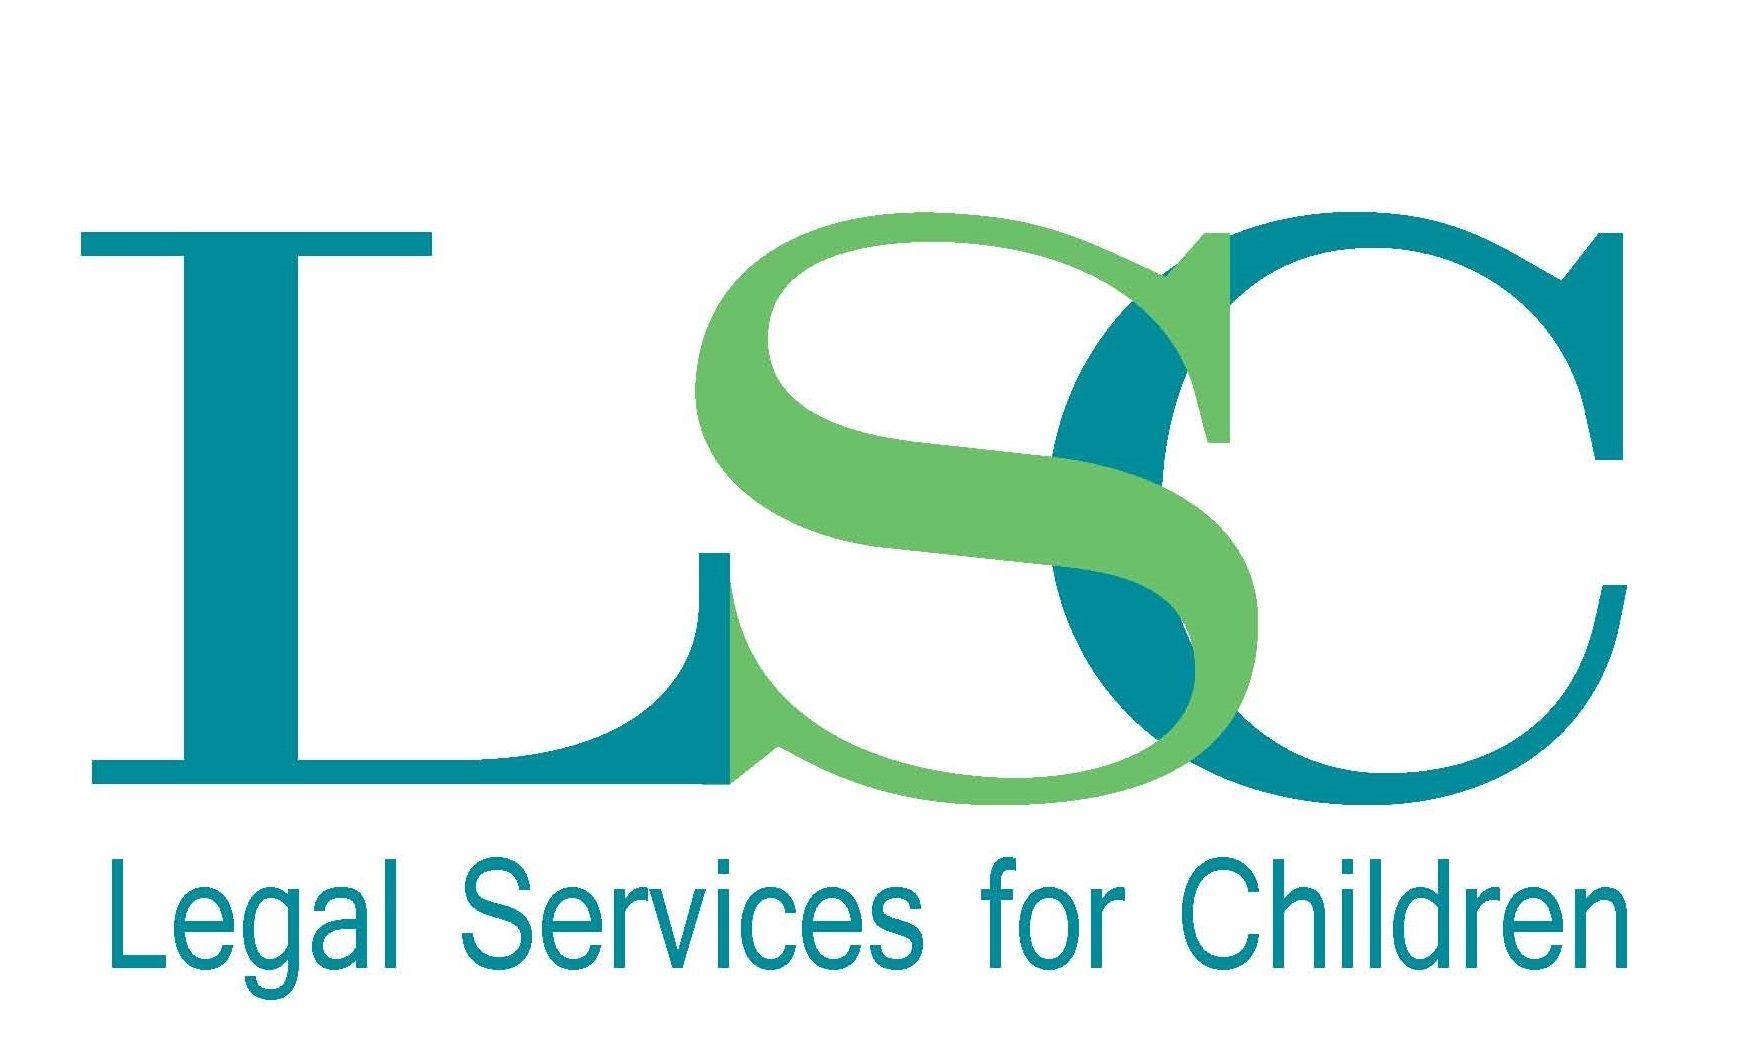 Lsc Legal Services For Children | Lsc Logo - Legal Services